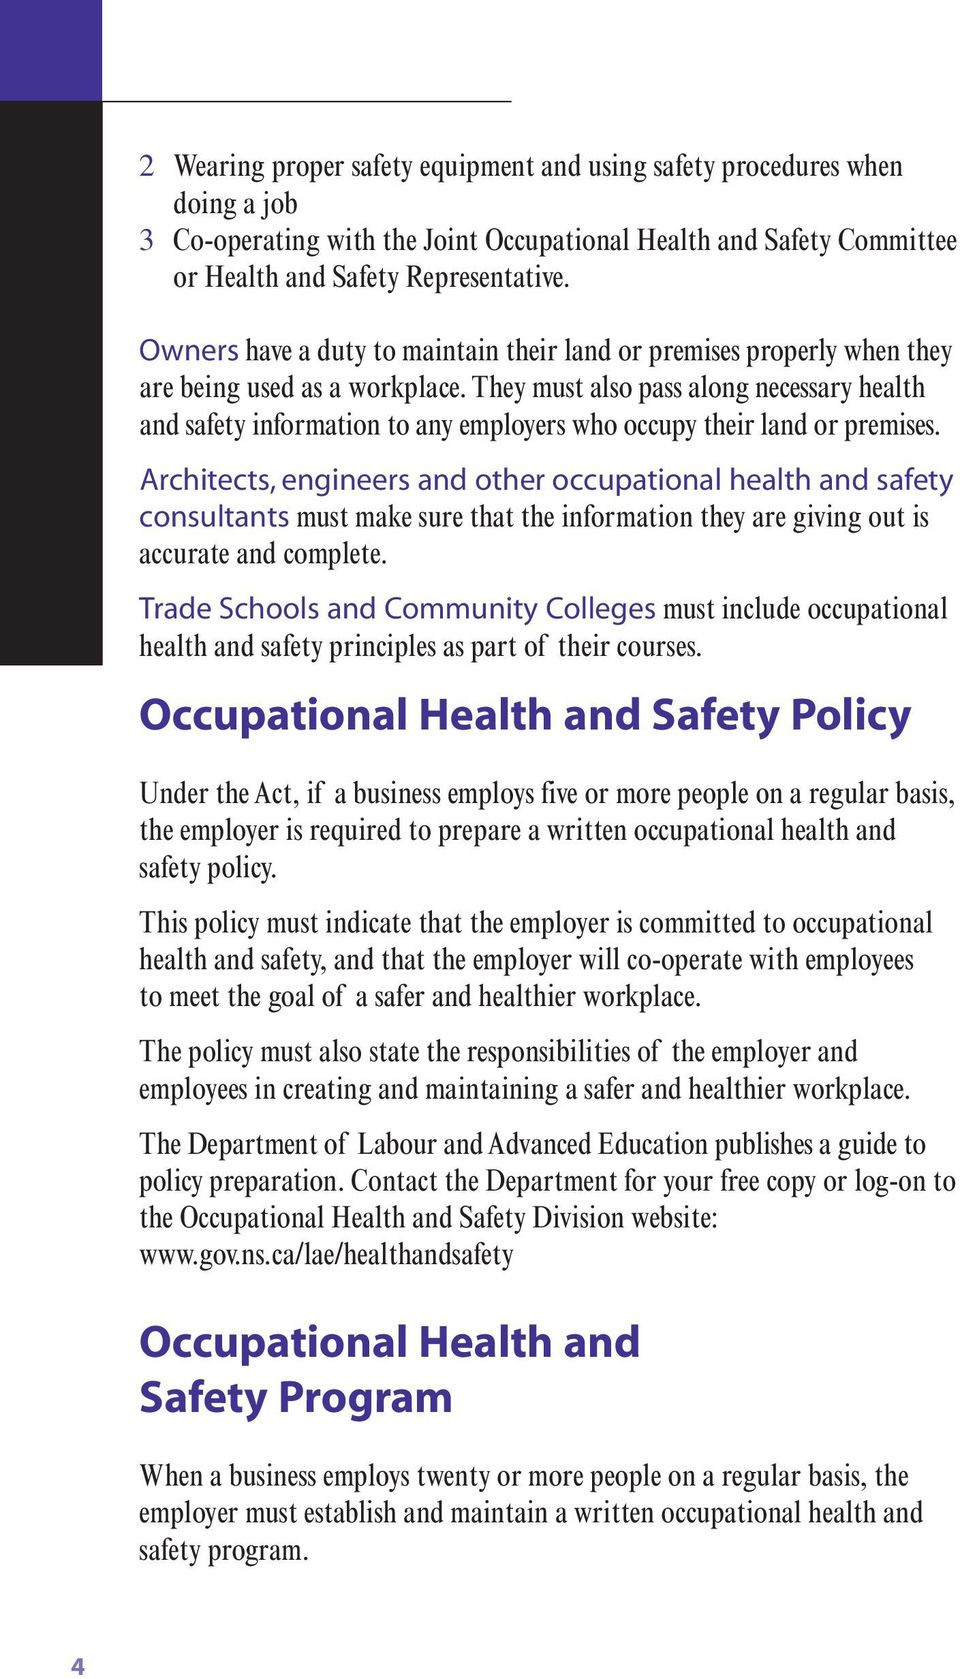 They must also pass along necessary health and safety information to any employers who occupy their land or premises.